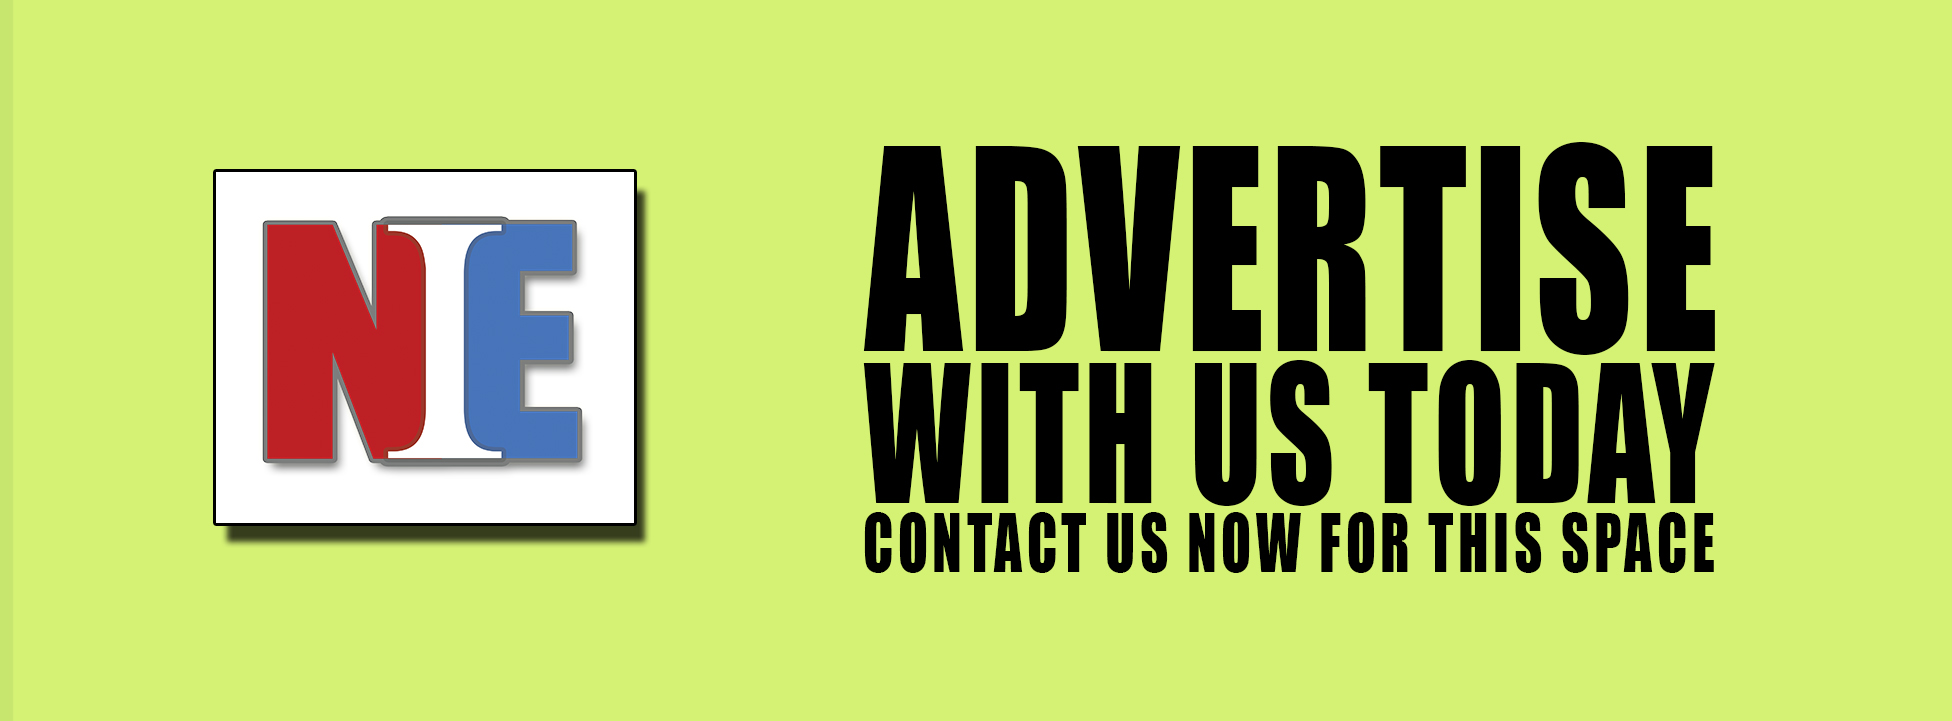 ADVERTISE WITH US NOW banner.jpg